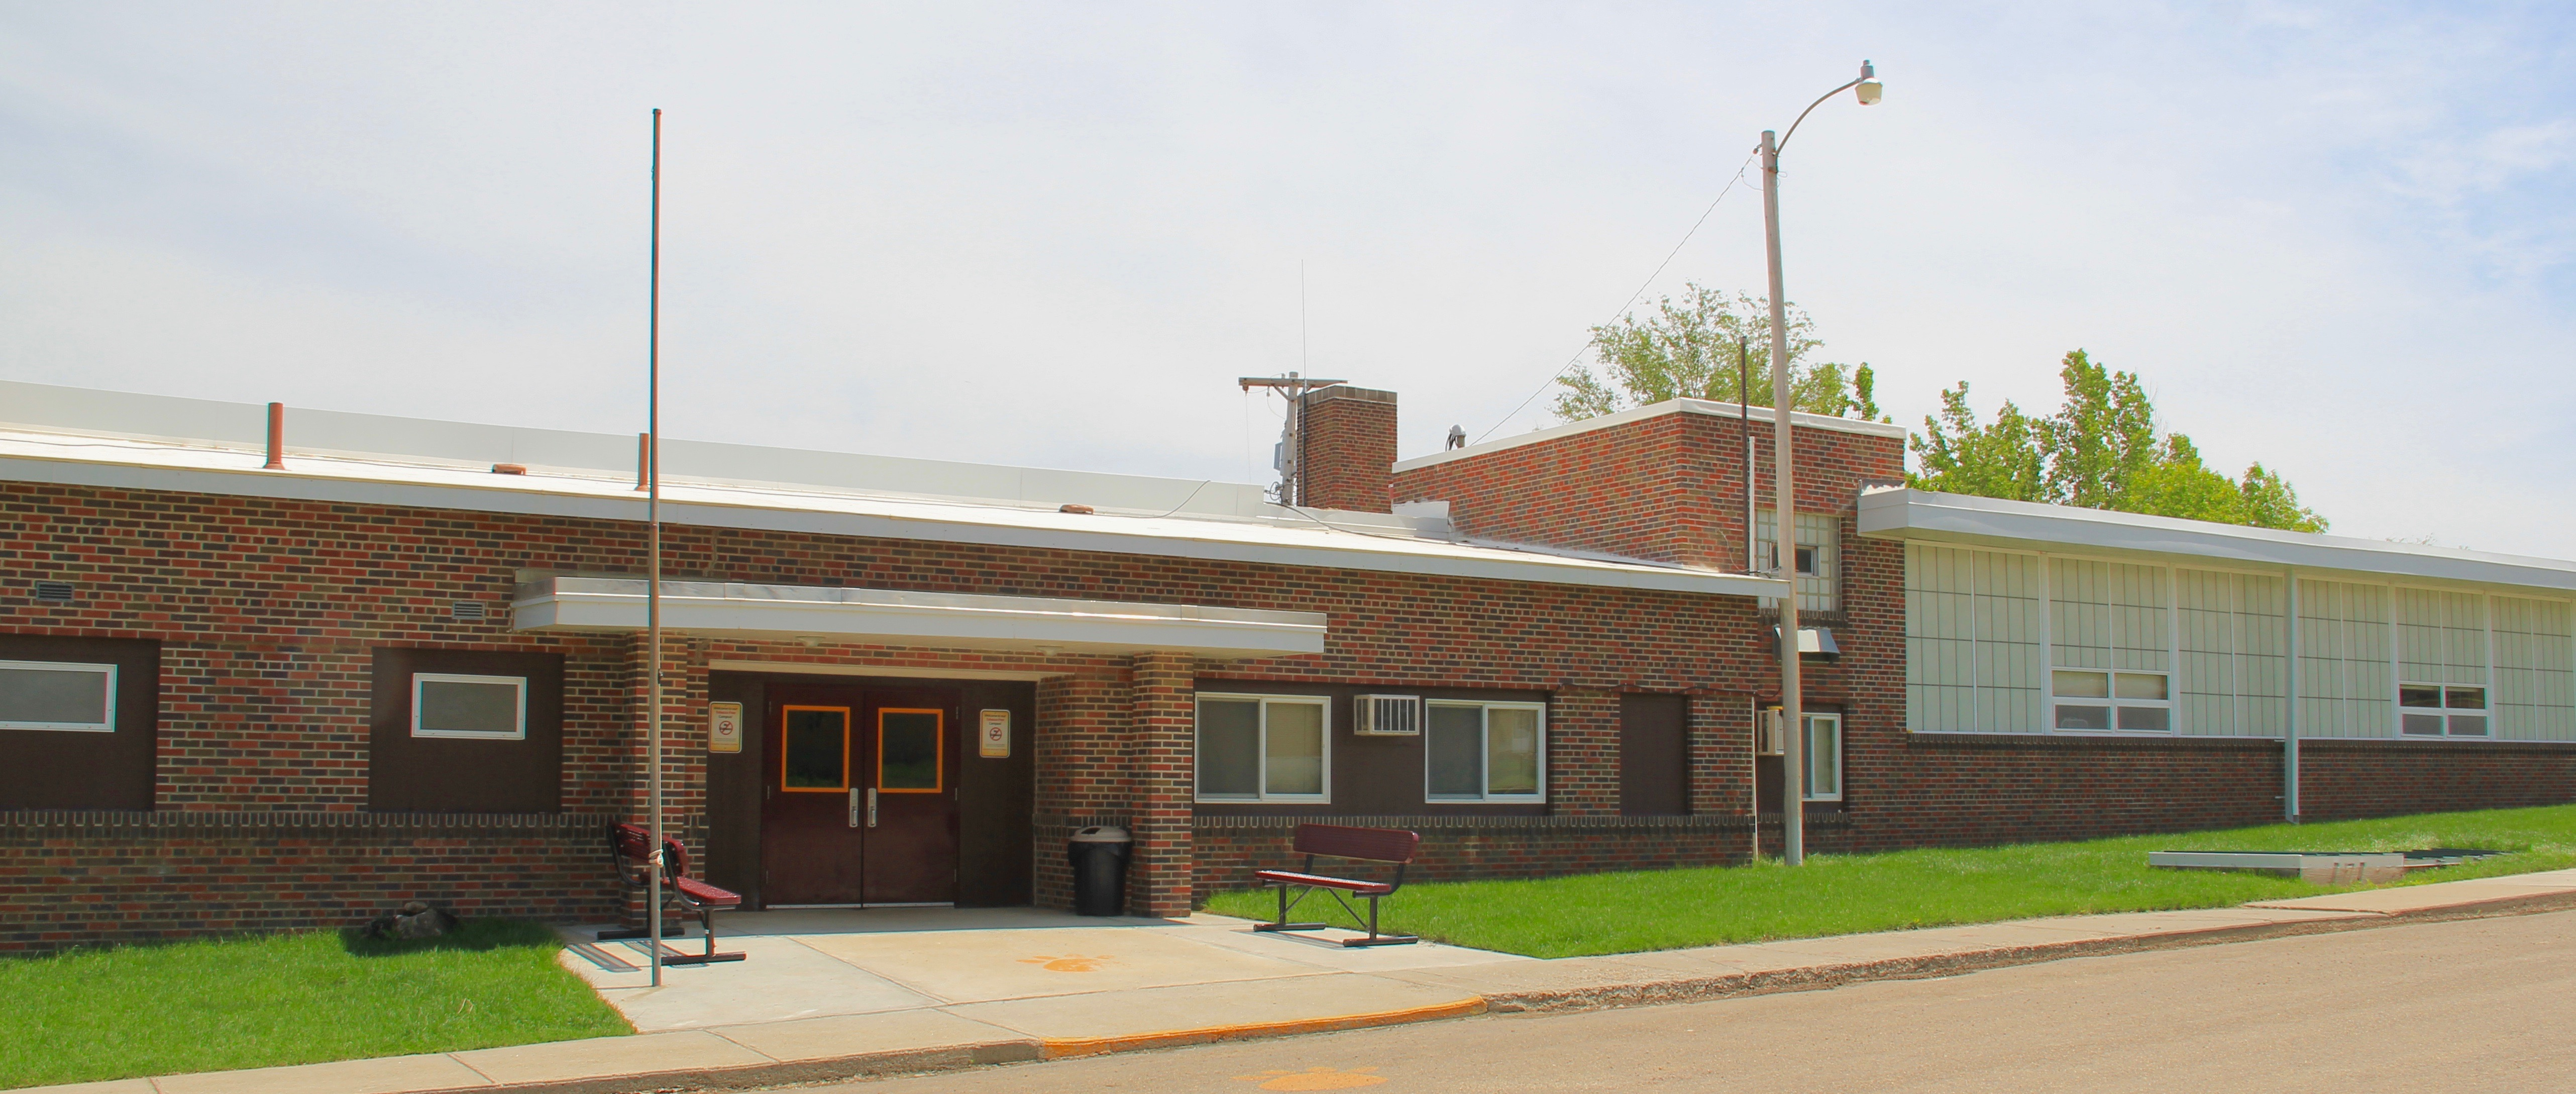 McCone Co Circle school 4